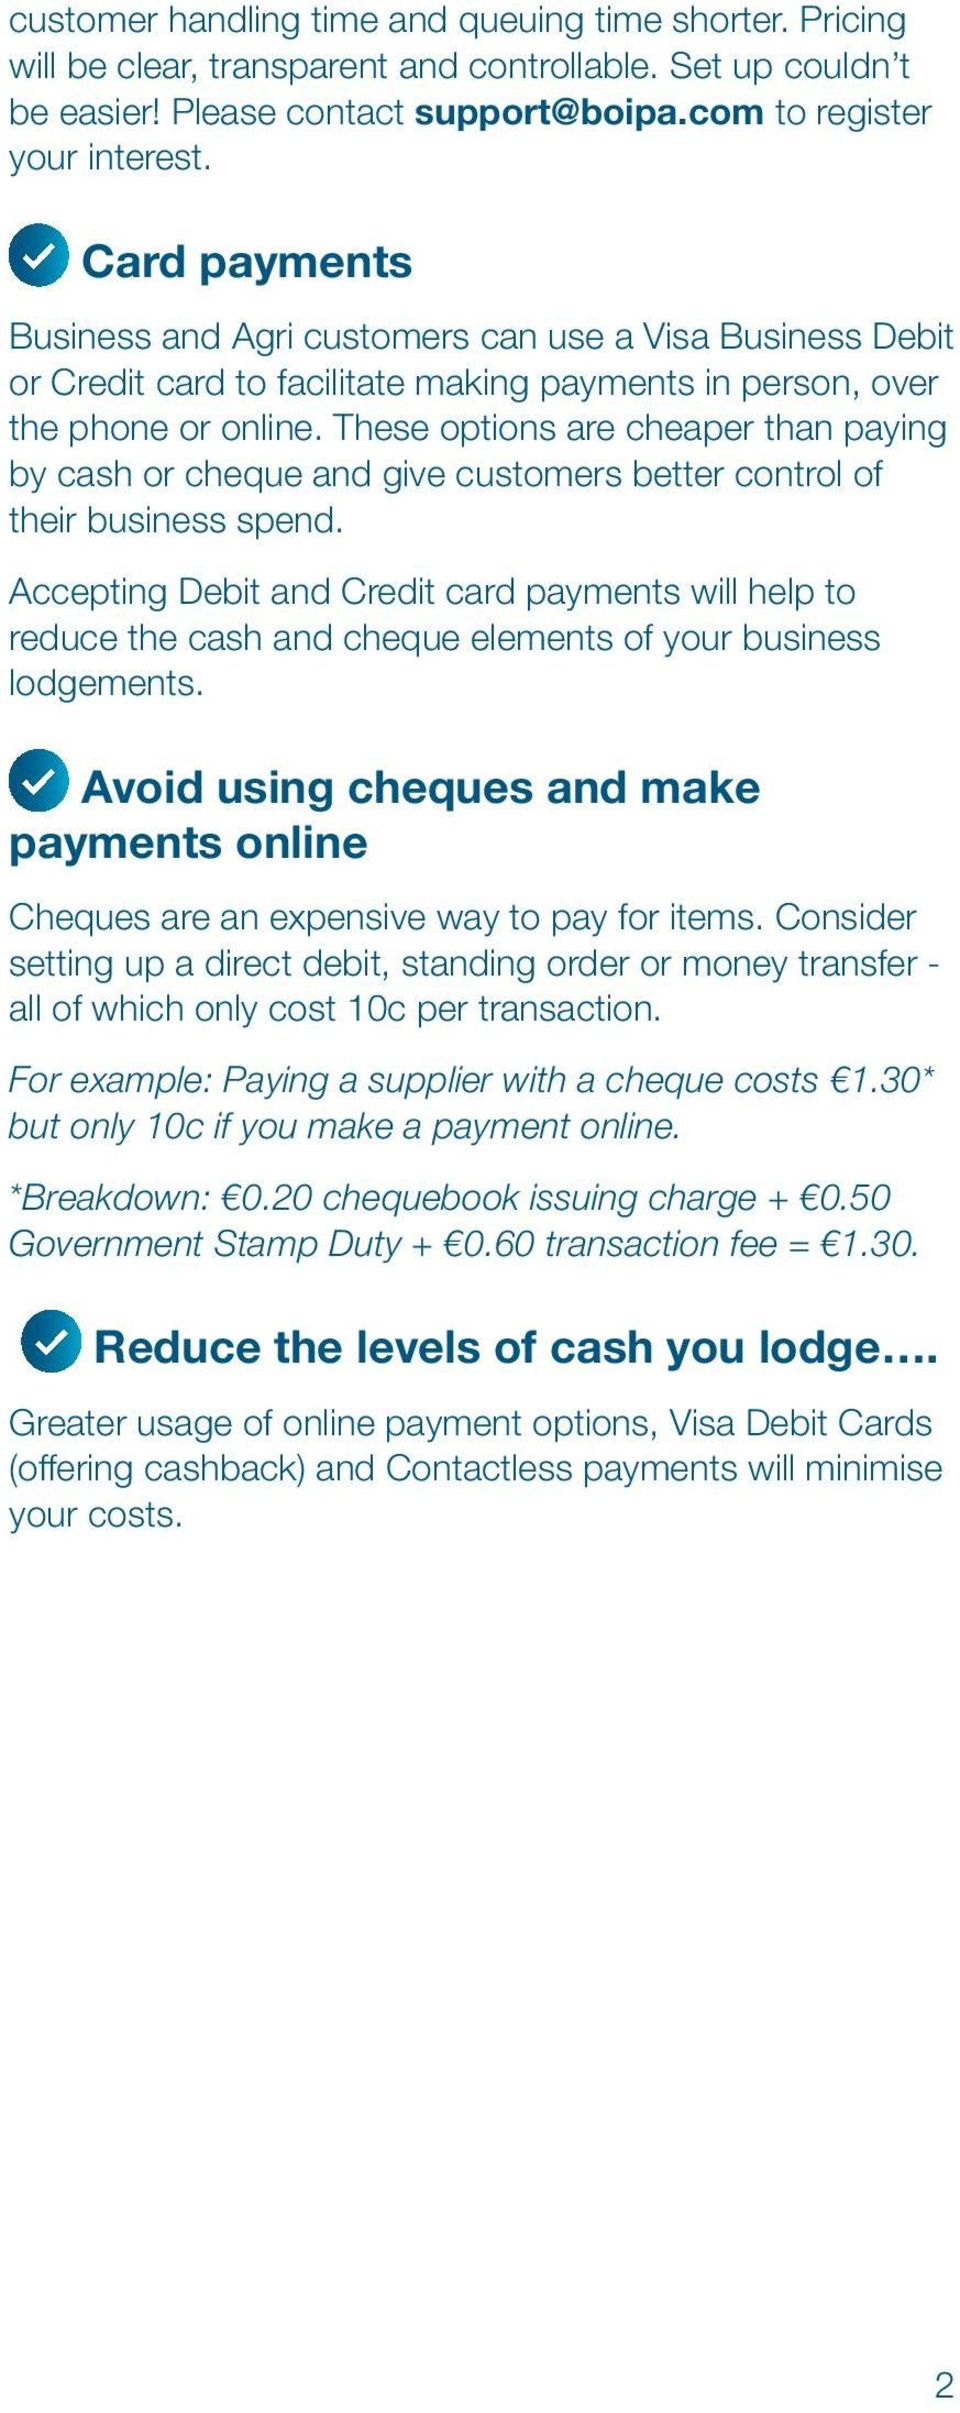 These options are cheaper than paying by cash or cheque and give customers better control of their business spend.